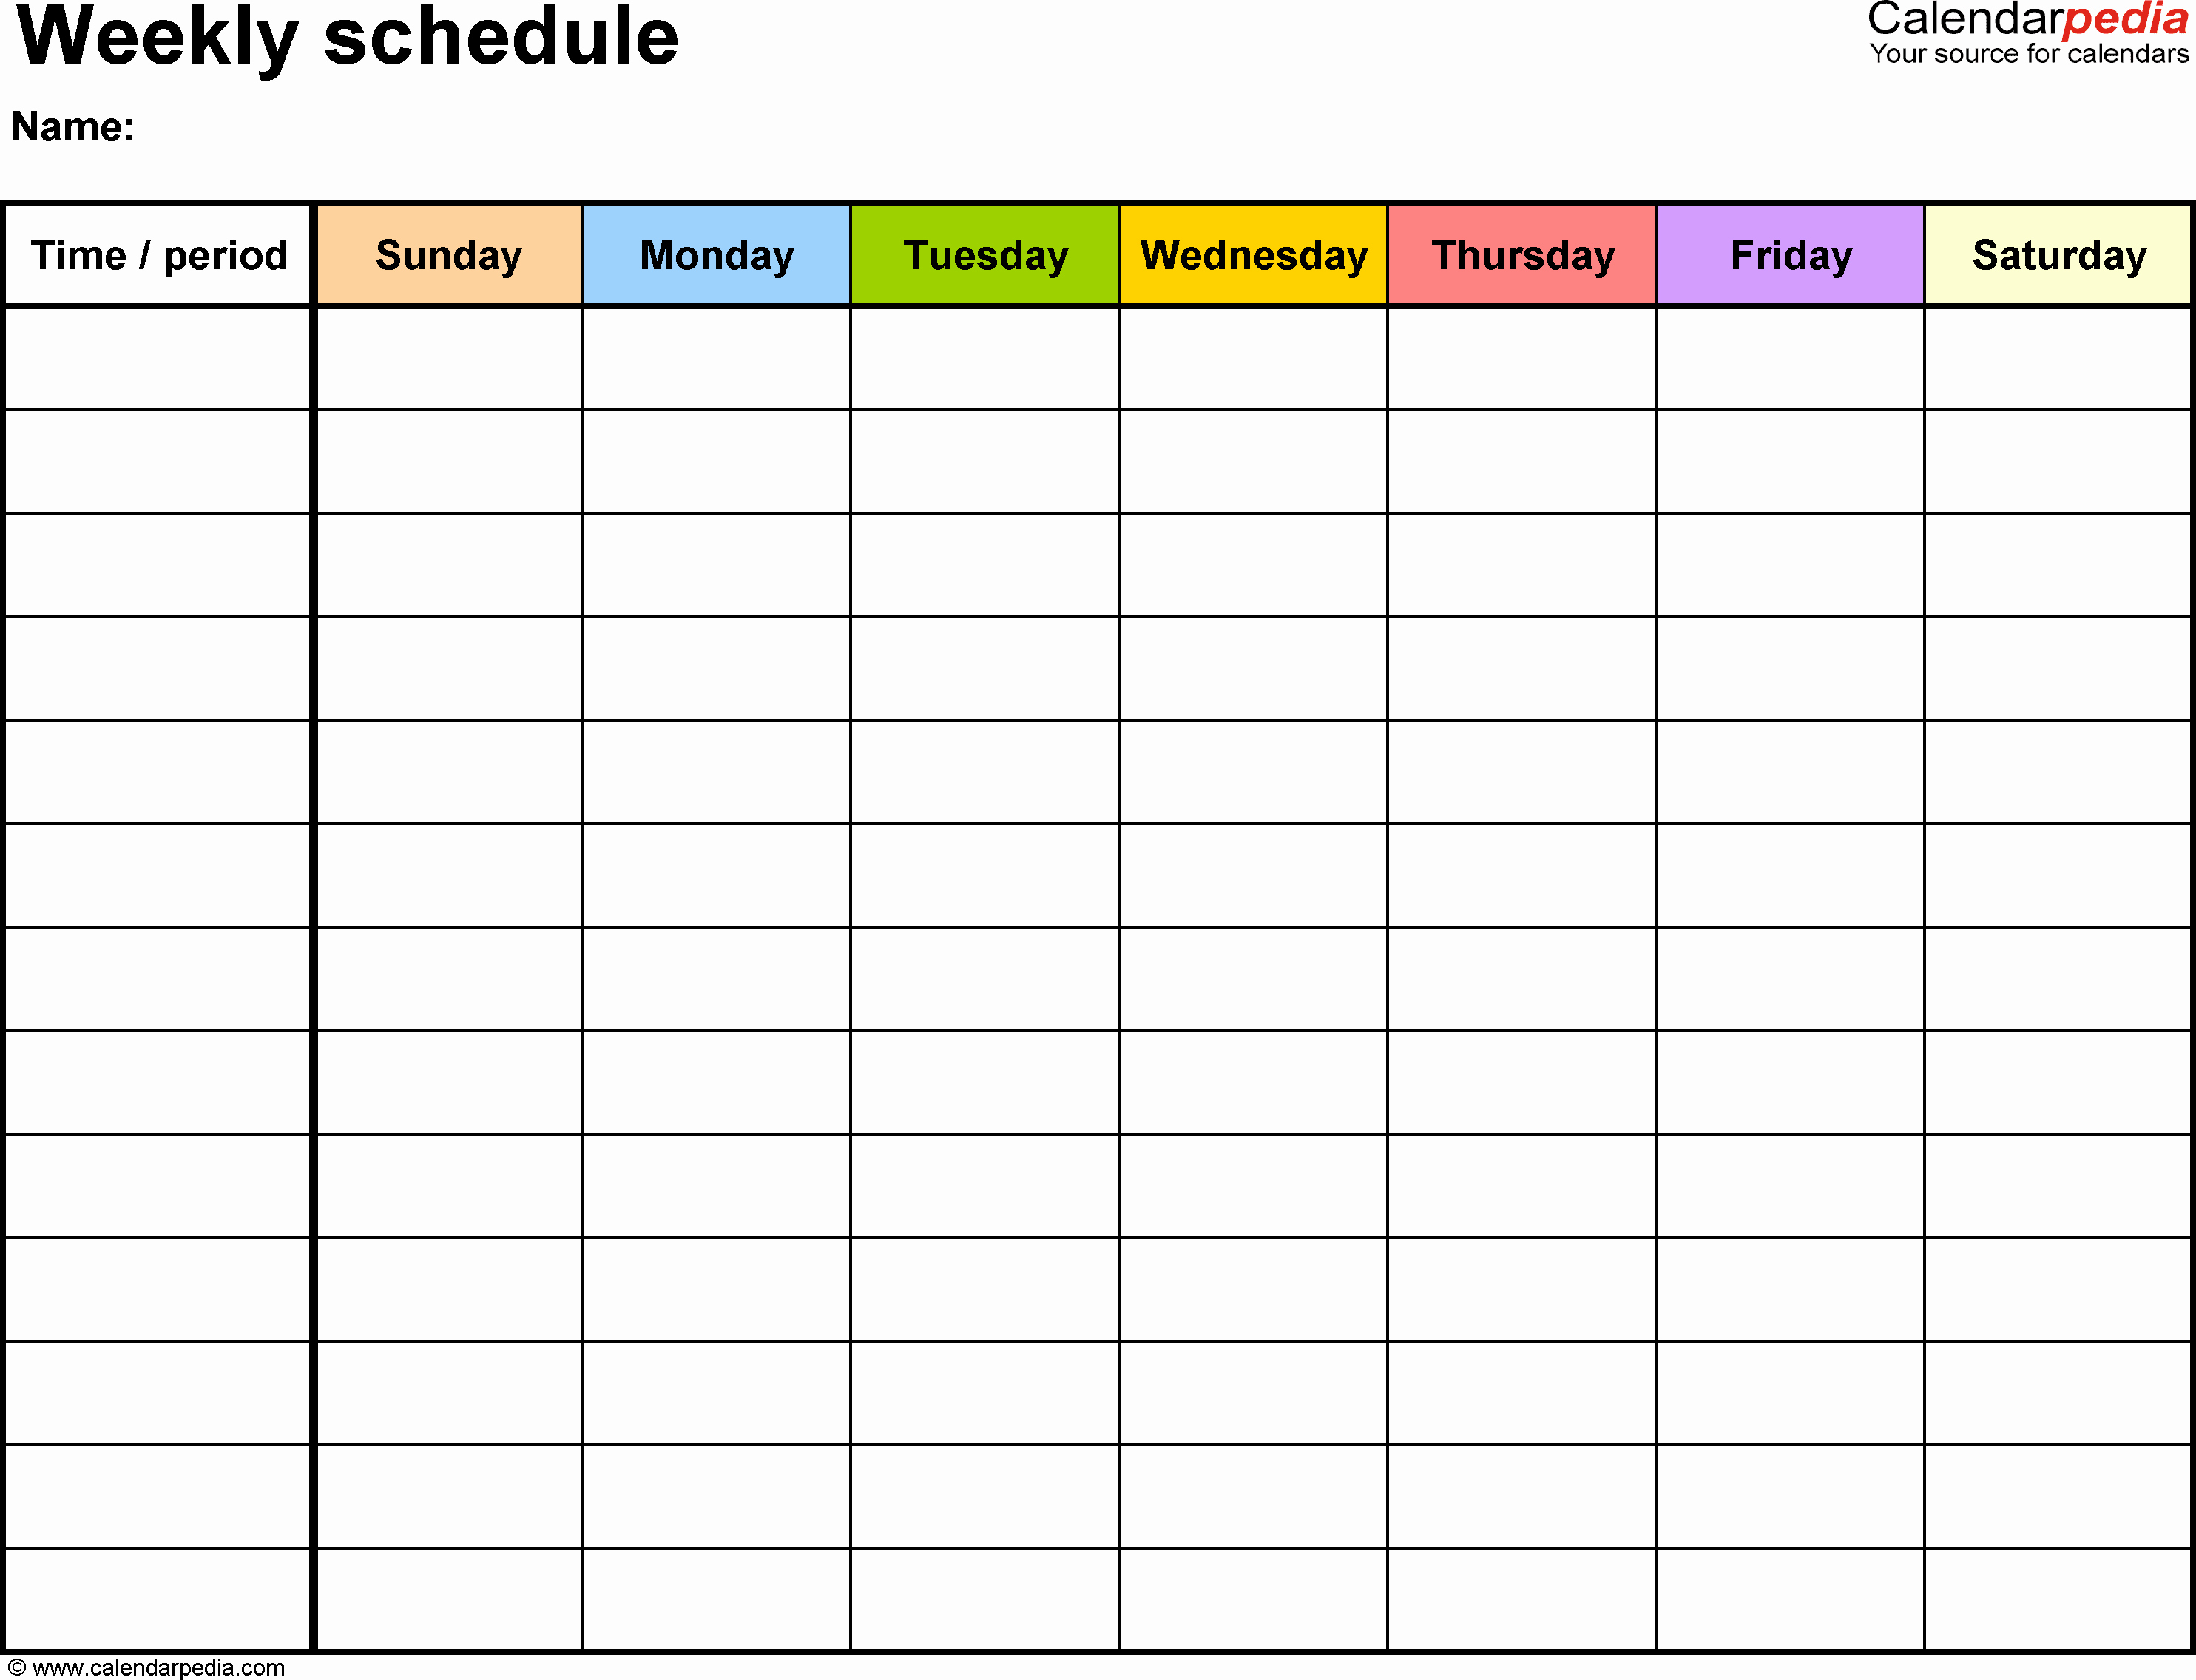 7 Day Weekly Planner Template New Weekly Schedule Template for Word Version 13 Landscape 1